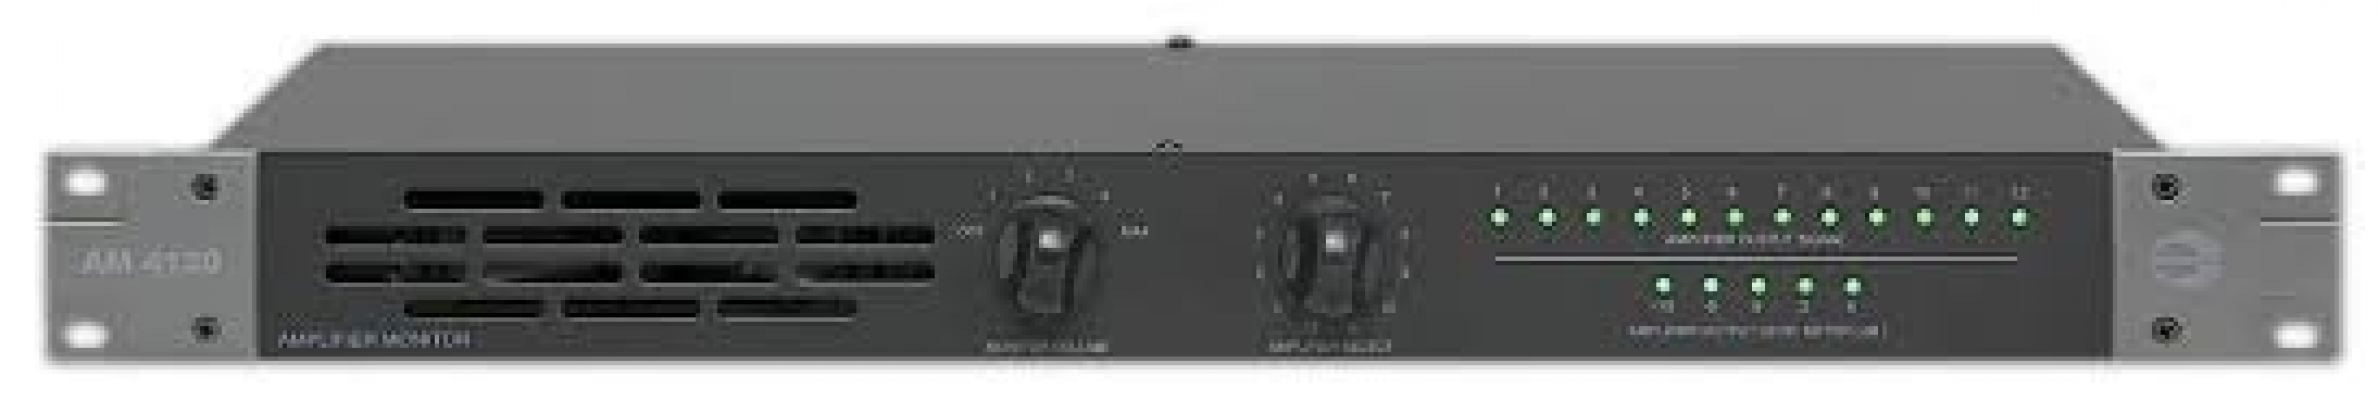 Amperes AM-4120 12 Channel Amplifier Monitor Panel